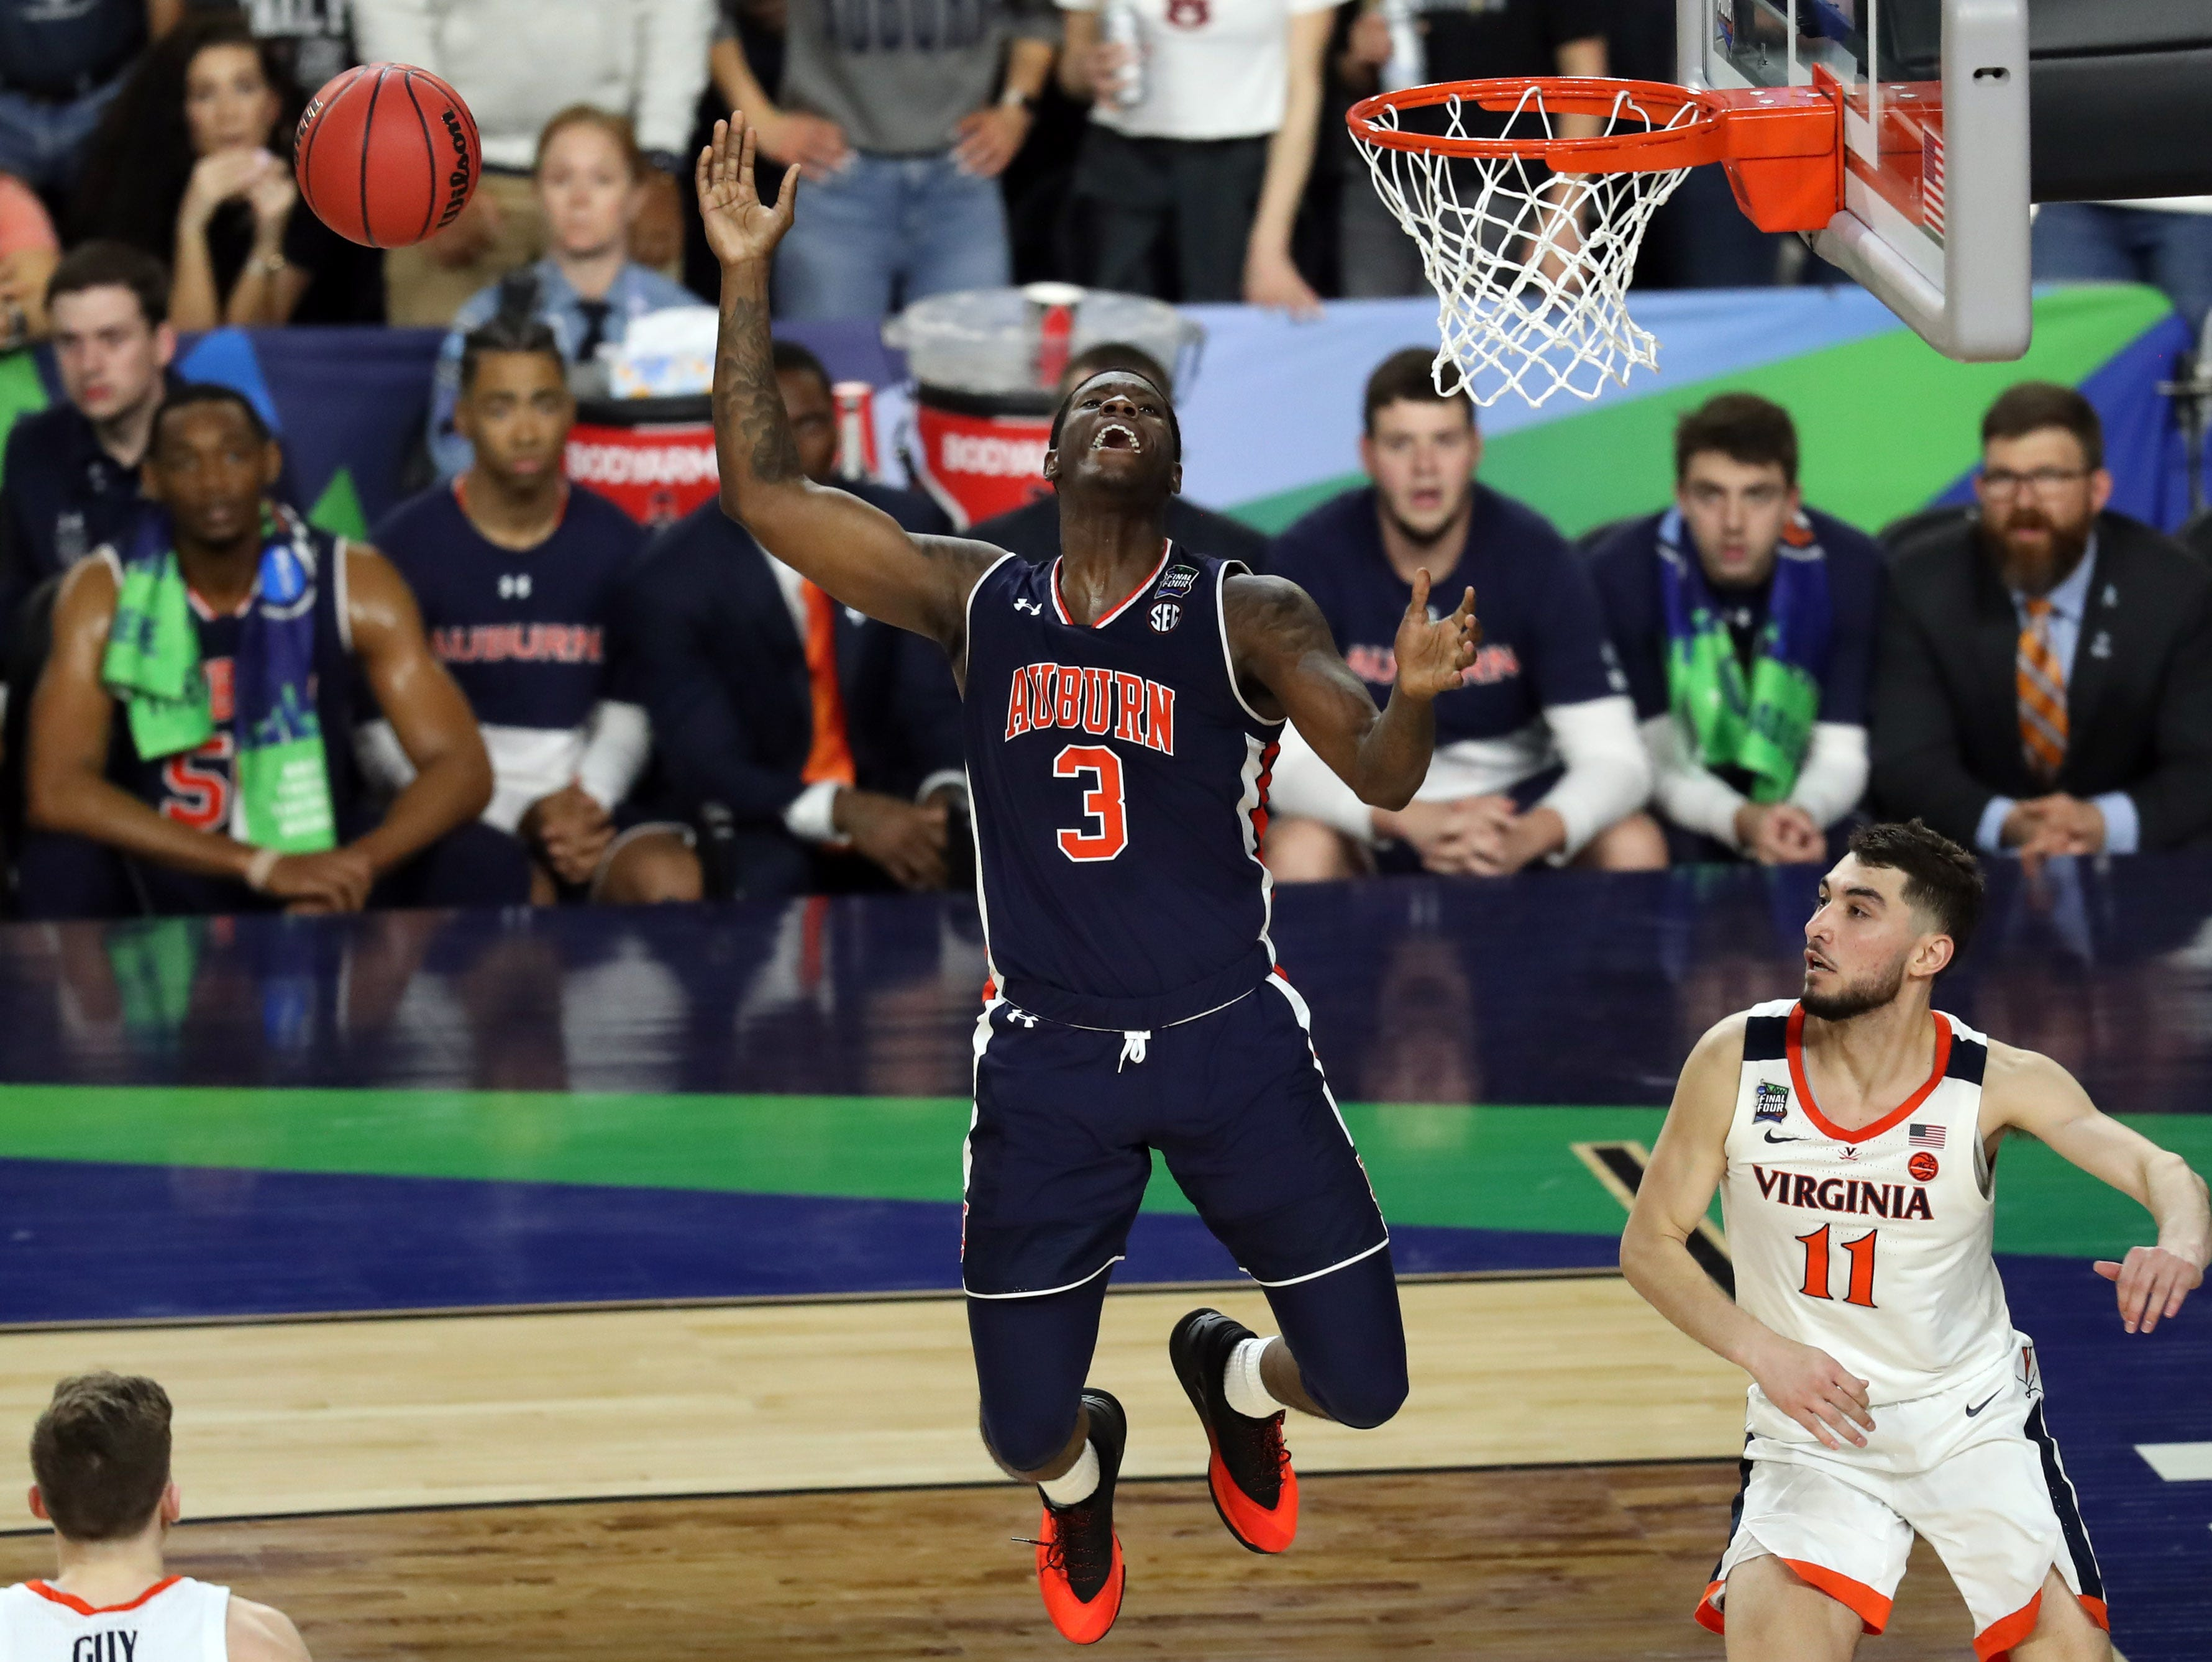 Auburn Tigers forward Danjel Purifoy (3) loses control of the ball against the Virginia Cavaliers.